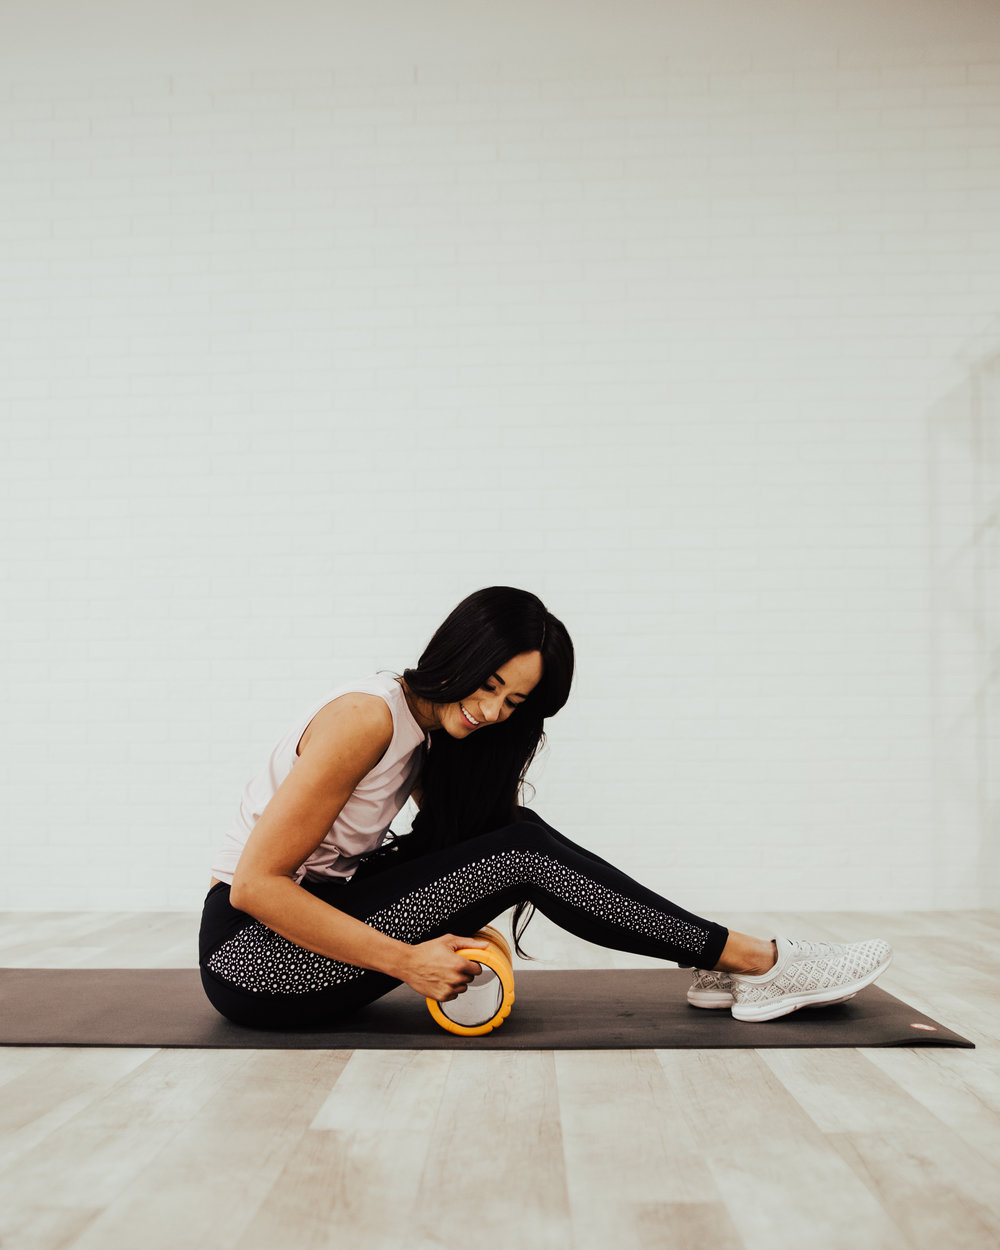 Place the foam roller perpendicular to the back of your thigh, keeping clear of the back of your knee.  Roll back and forth for 2-3 minutes. You can do either two legs at a time (both on the foam roller) or to increase the intensity cross one leg over the other.